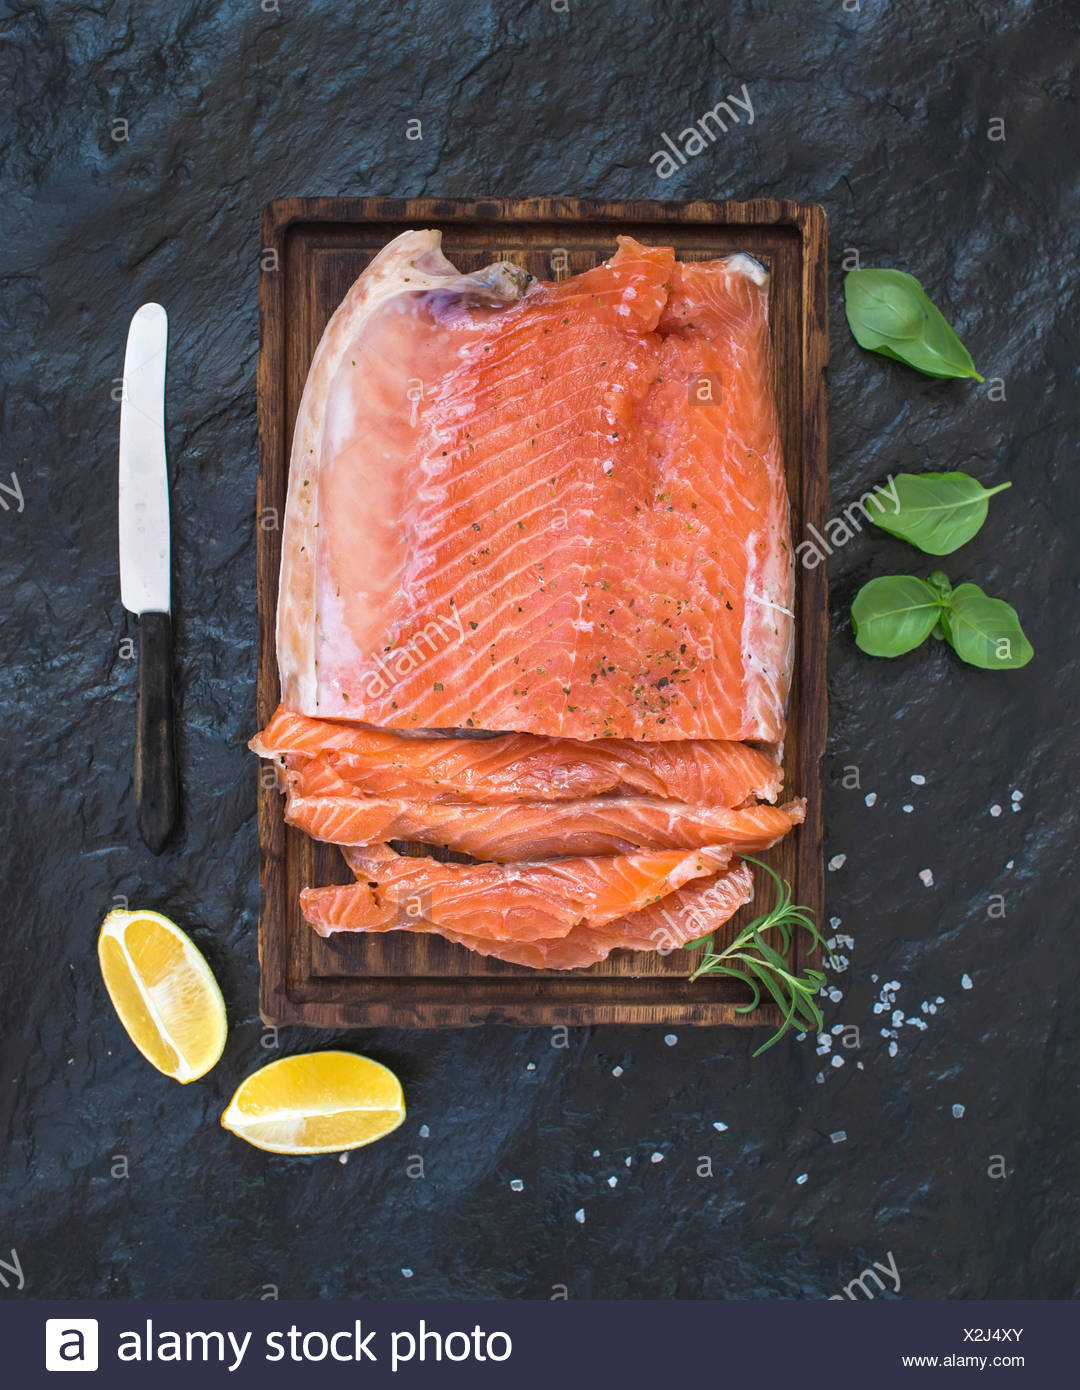 Smoked salmon filet with lemon, fresh herbs and bred on wooden serving board over dark stone backdrop, top view - Stock Image